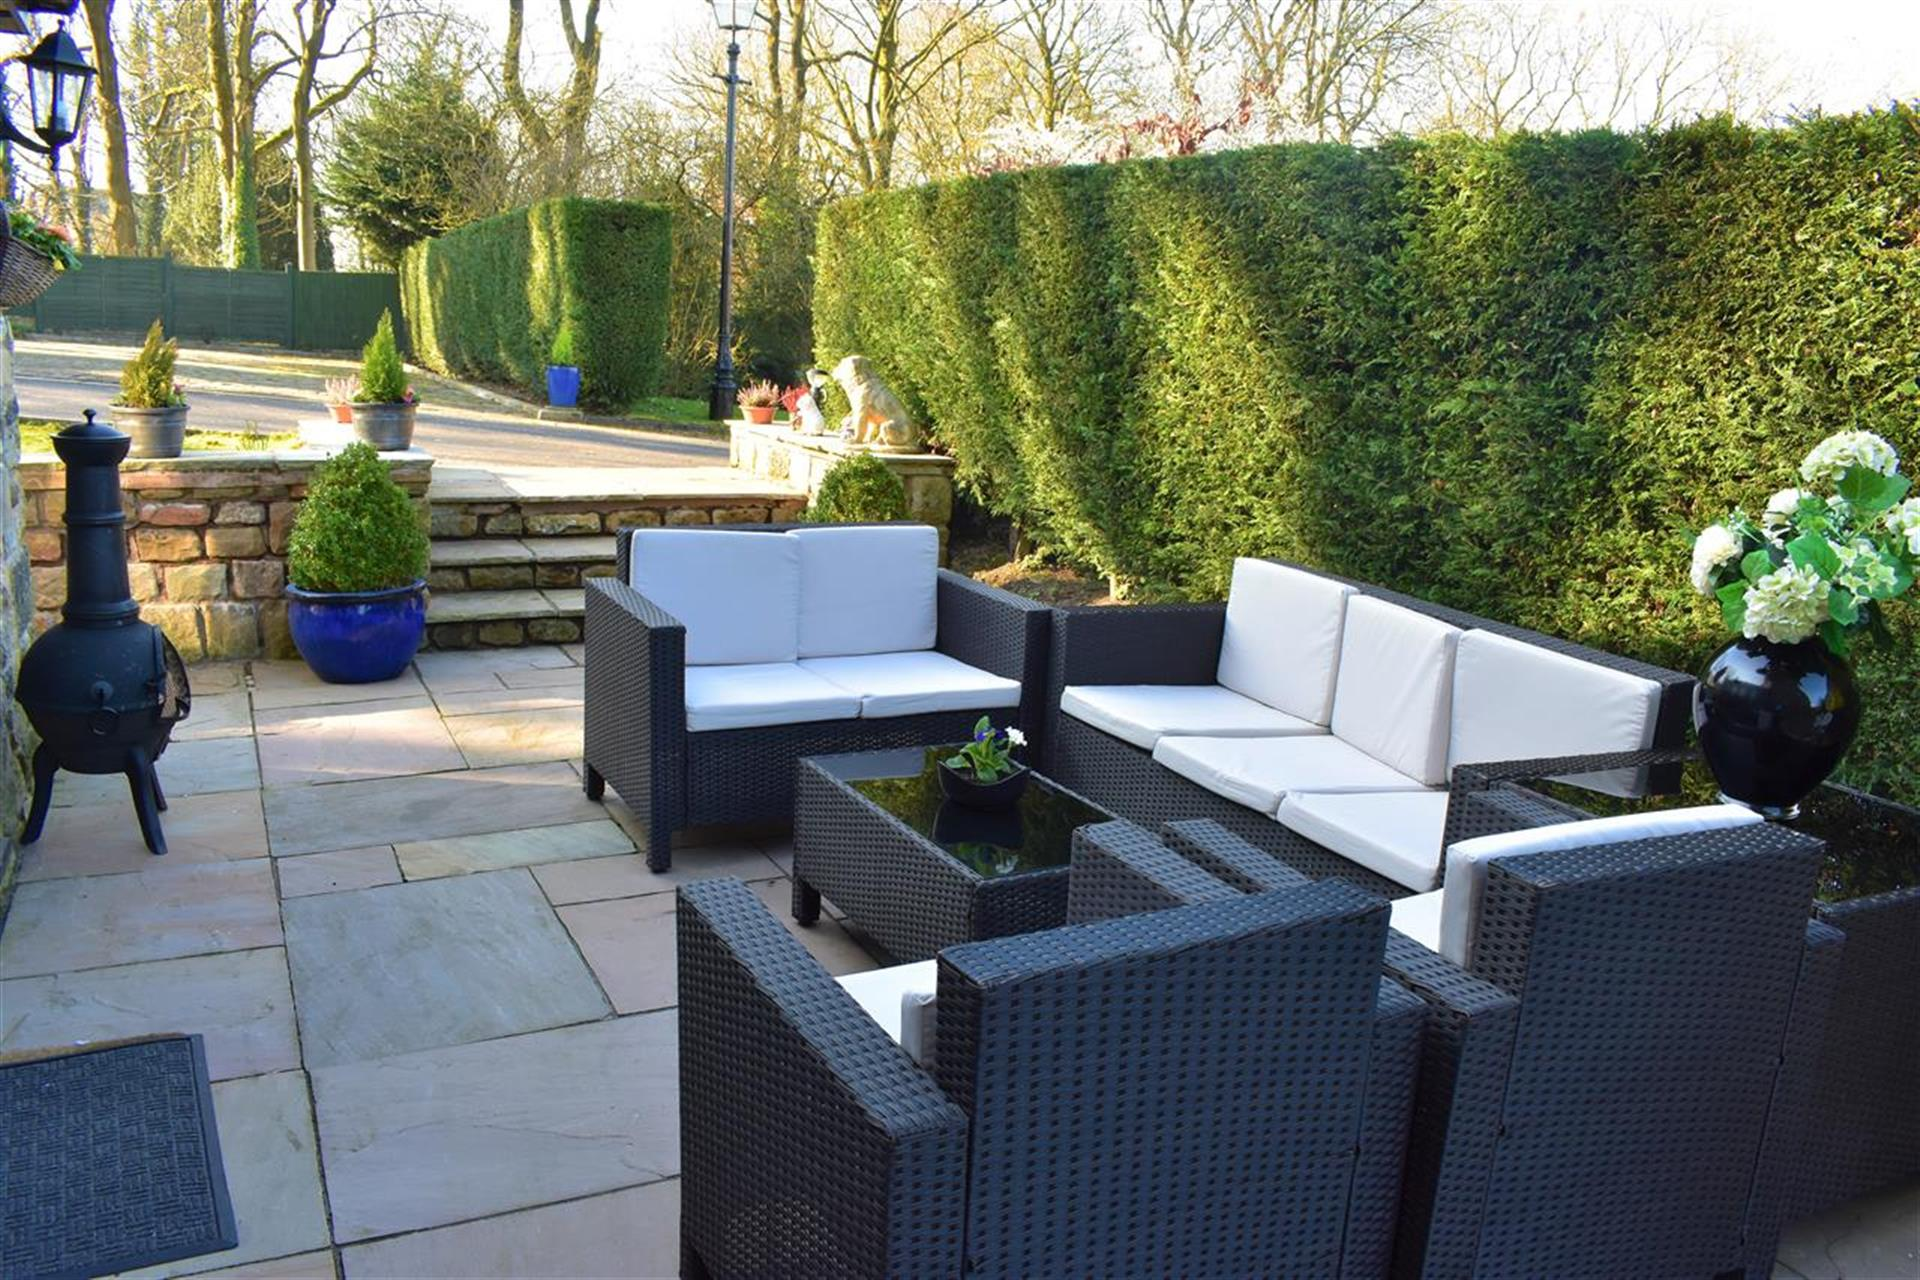 4 Bedroom Detached House For Sale - Patio Area